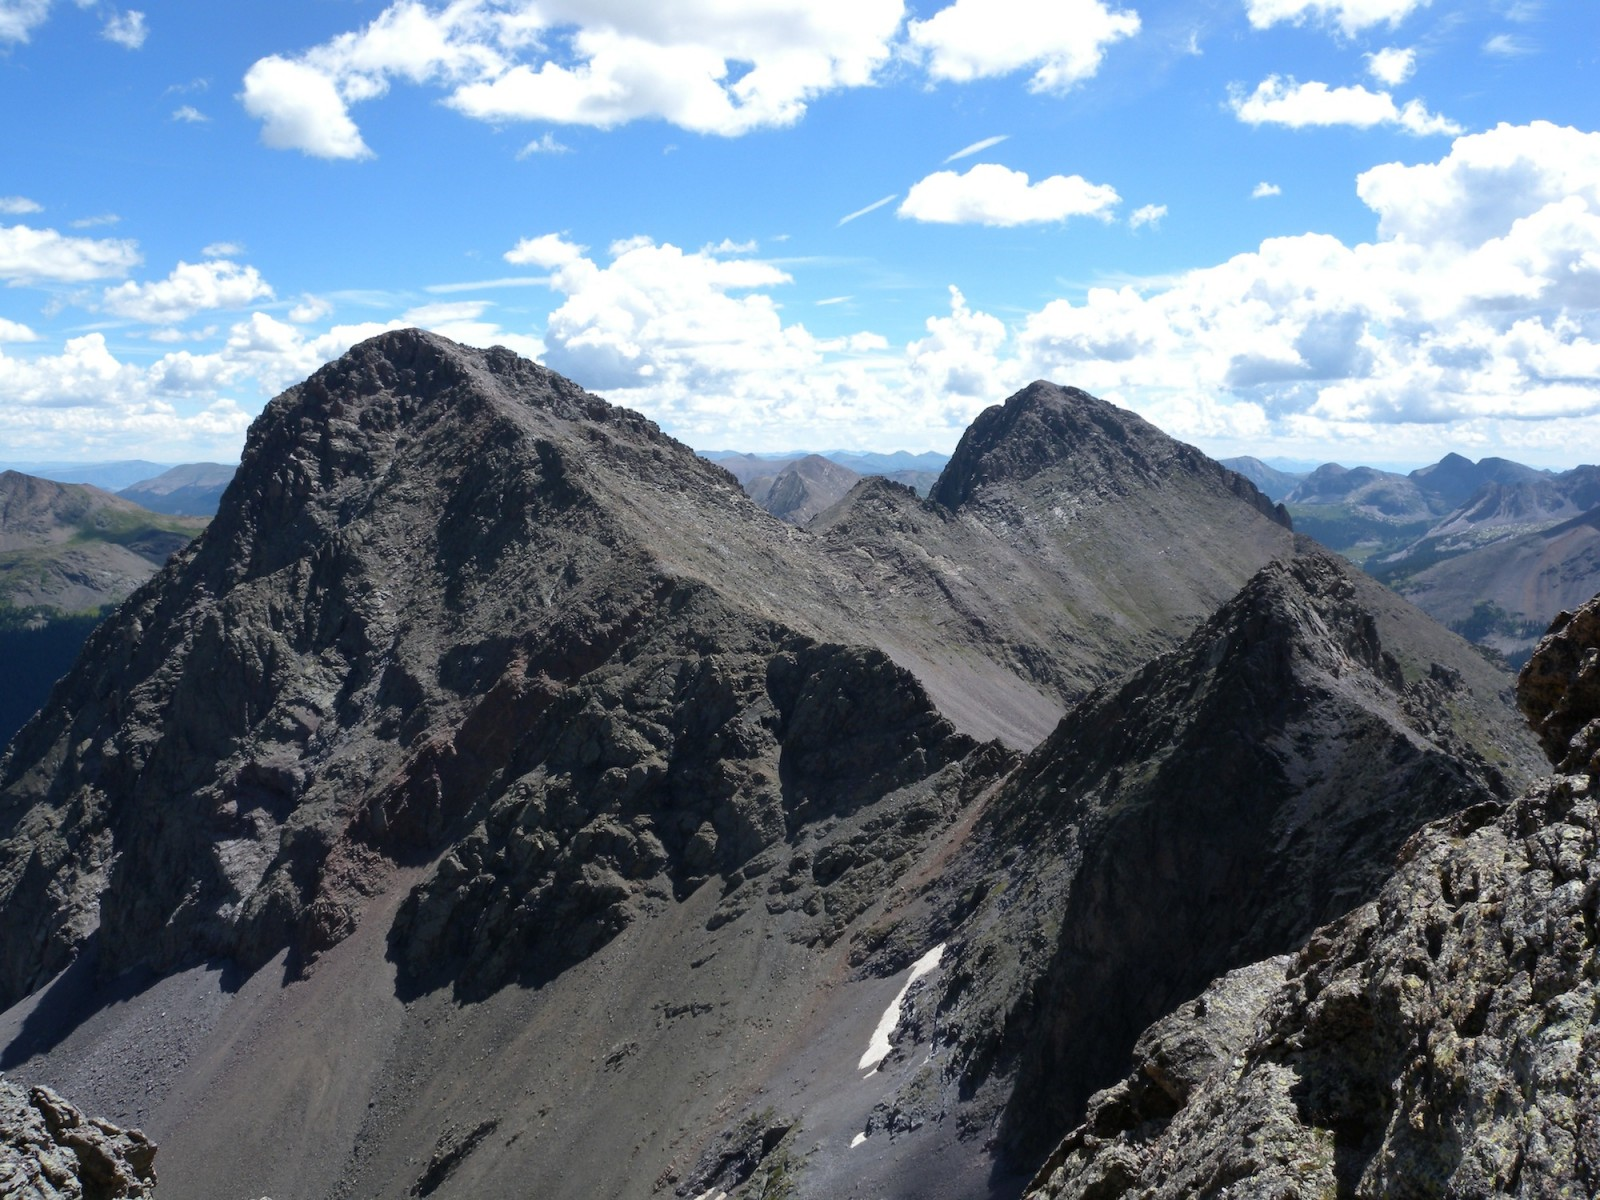 Mt. Silex (left) and The Guardian (right)